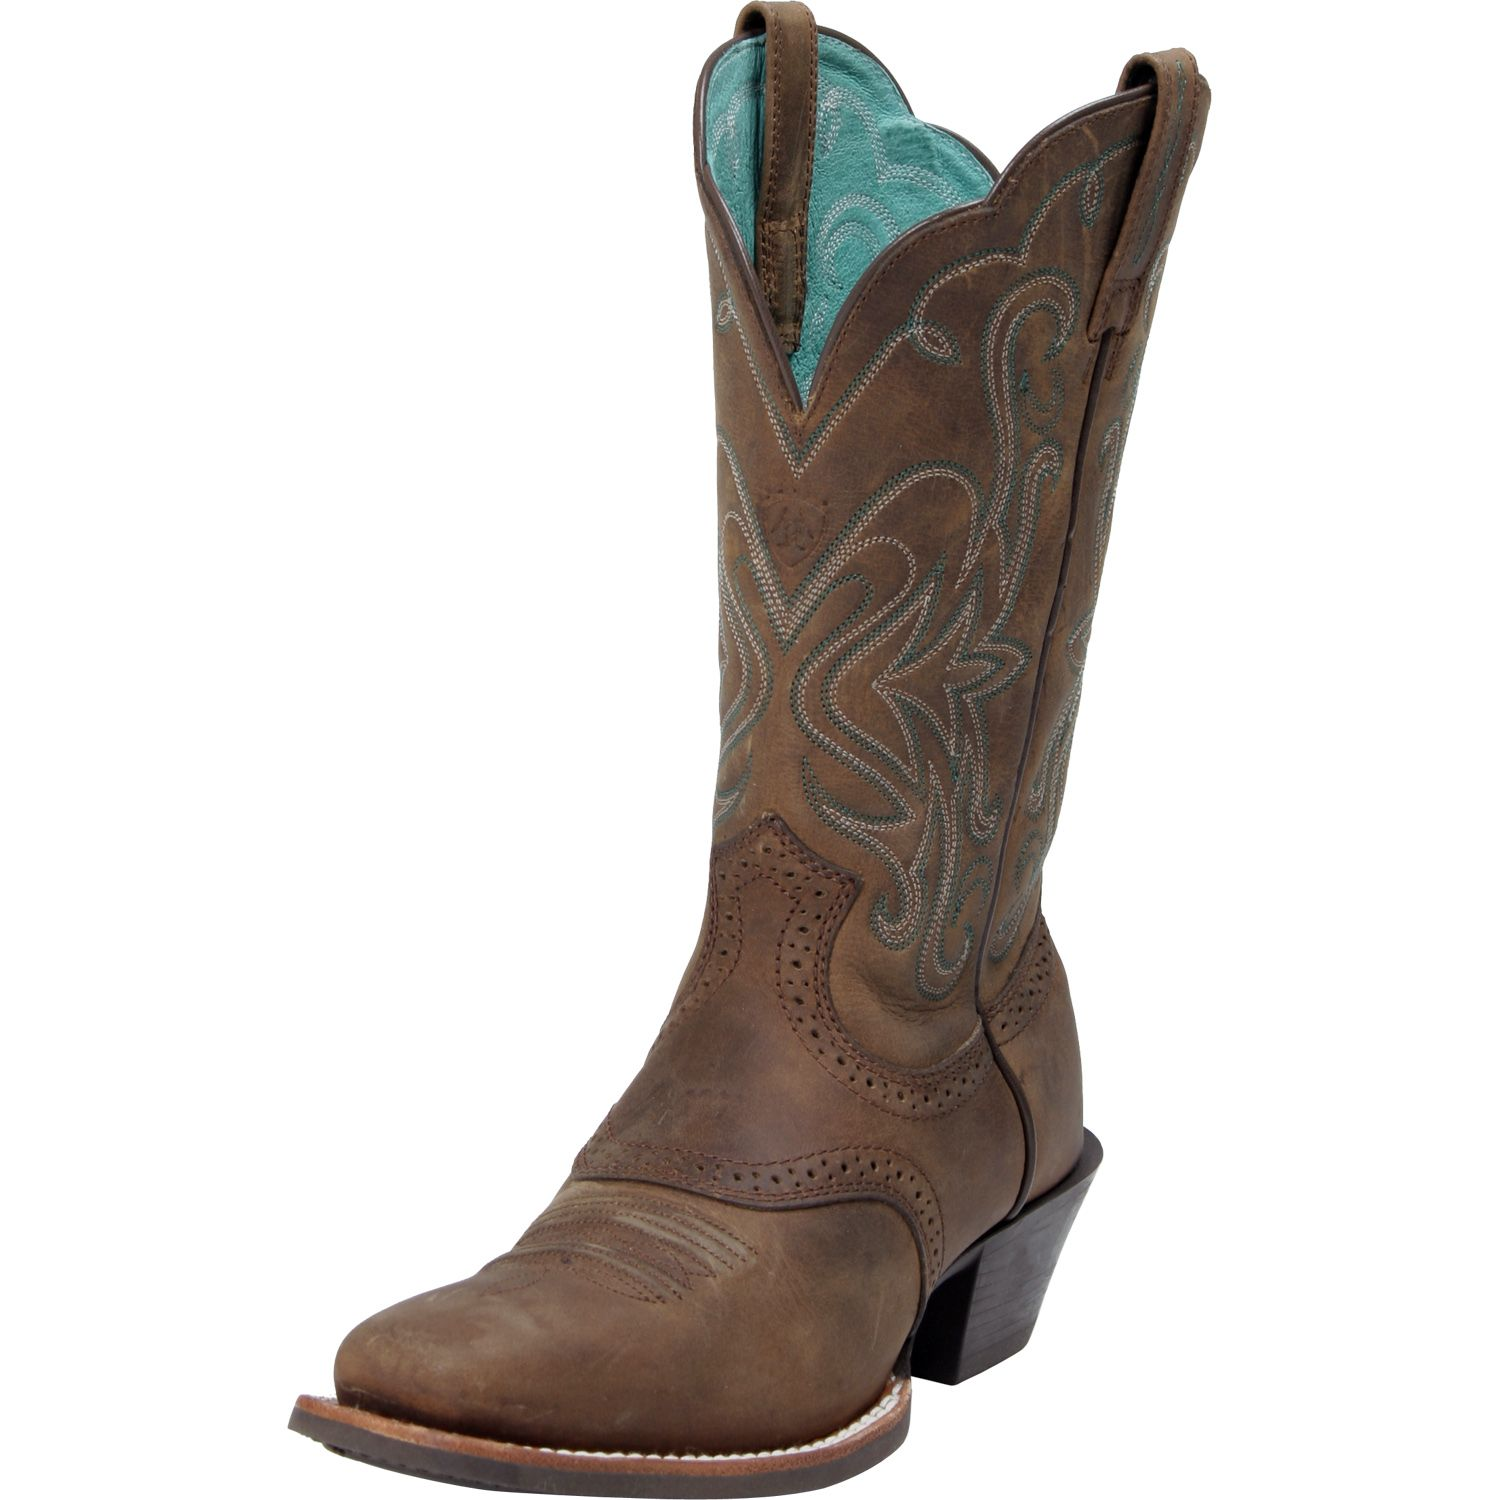 Simple The Boot Factor Ariat Boots For Women